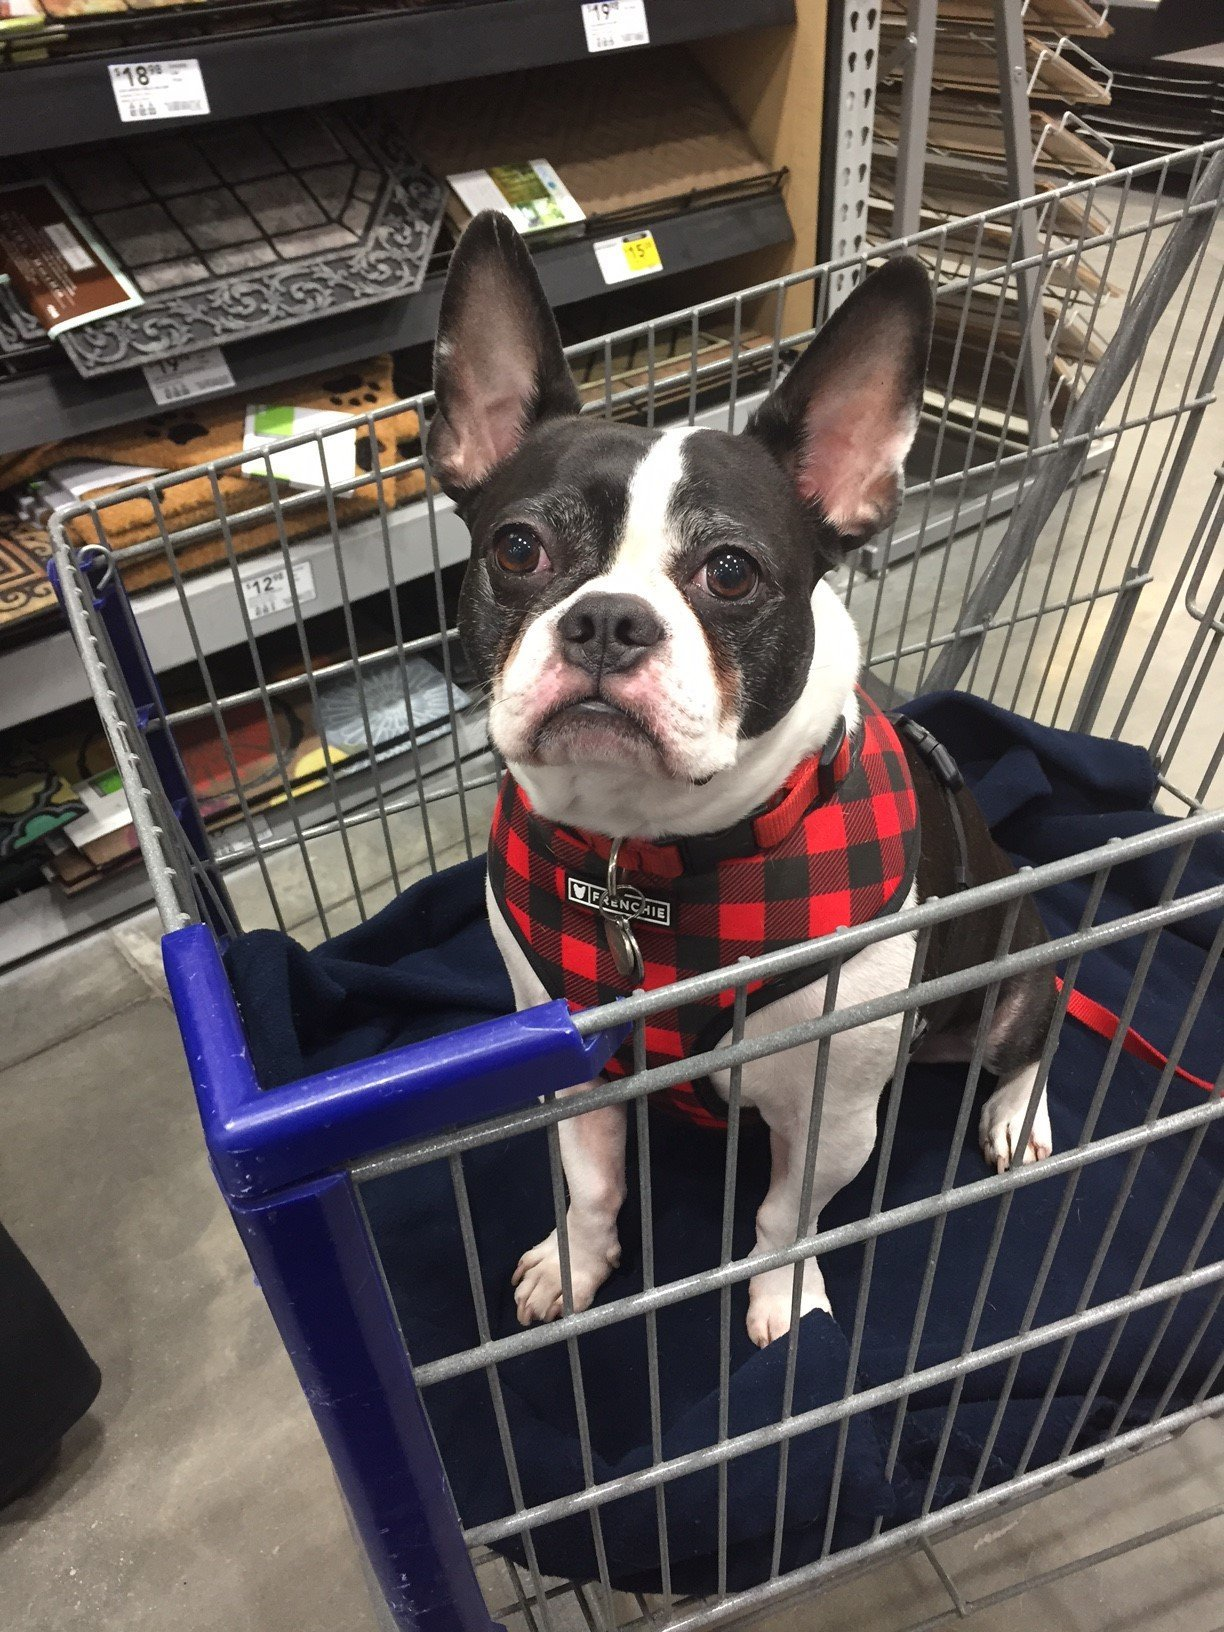 Tucker the pup riding in a shopping cart